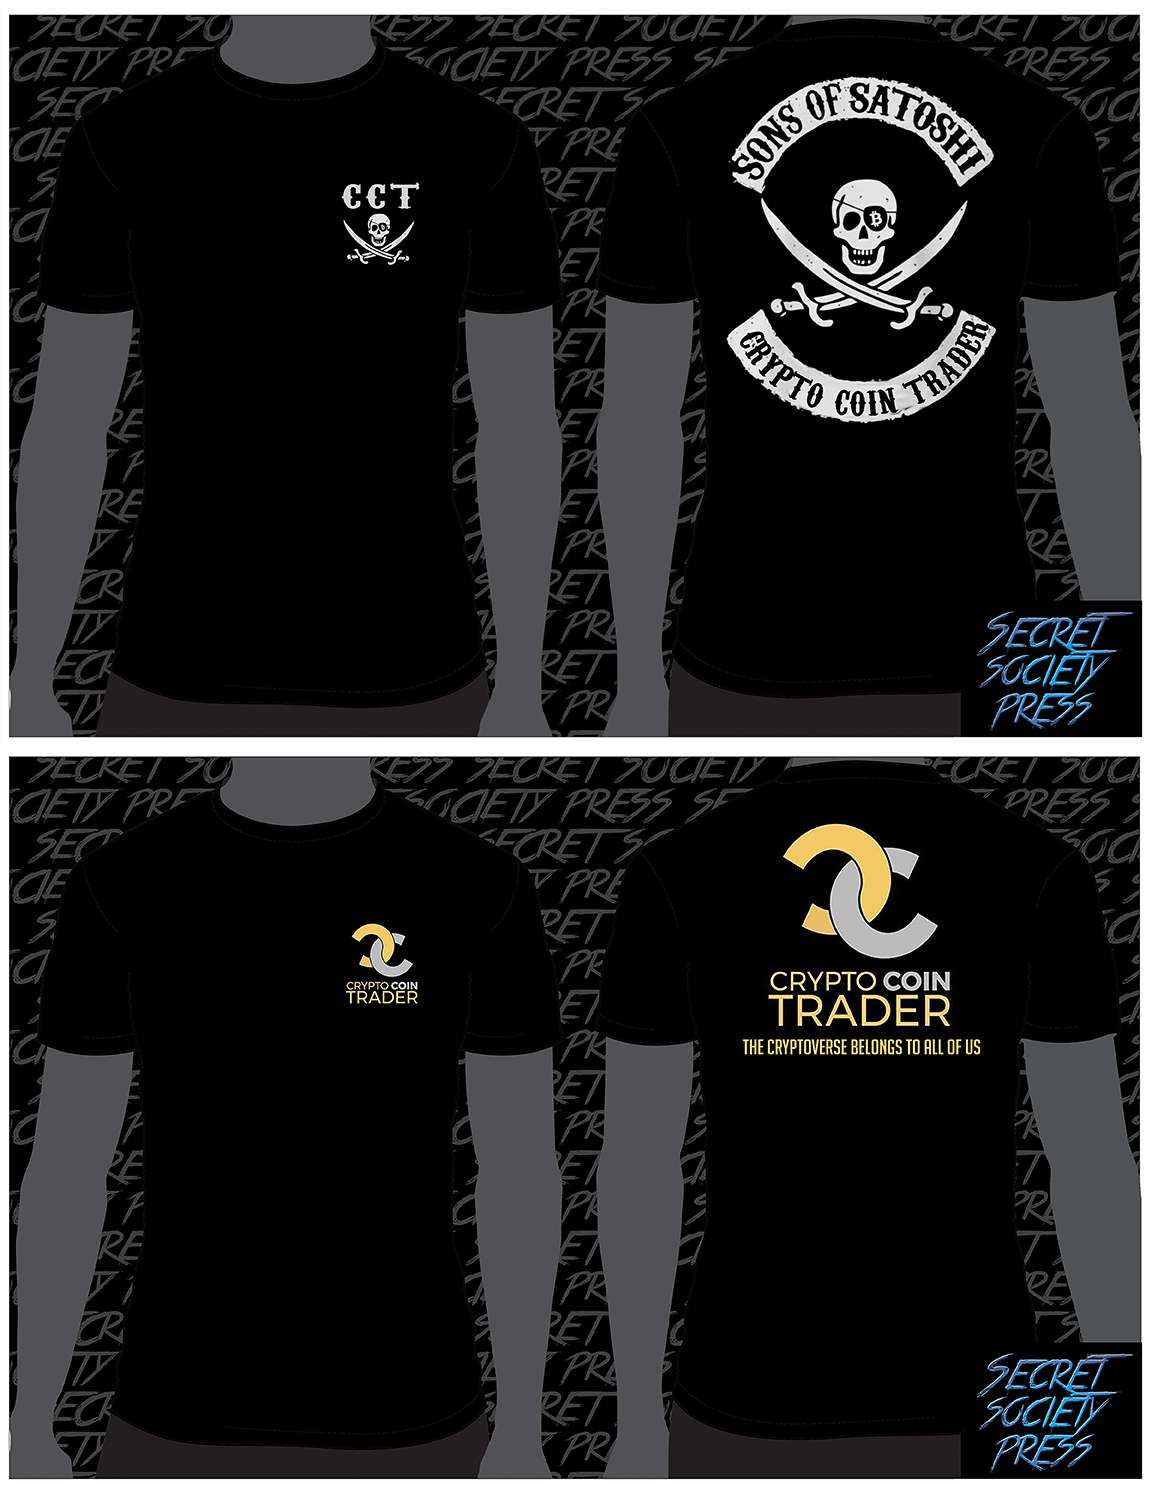 Crypto Coin Trader - 2 Shirt Deal sold by Secret Society Press